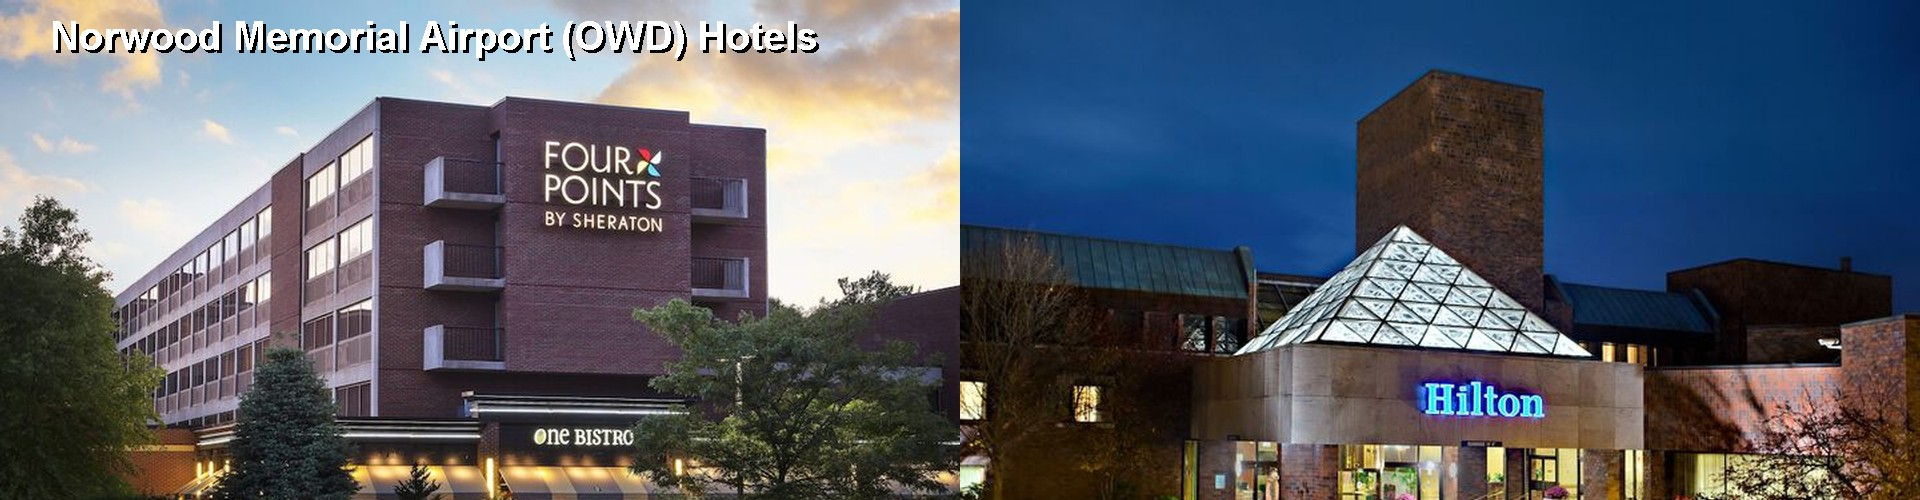 5 Best Hotels near Norwood Memorial Airport (OWD)